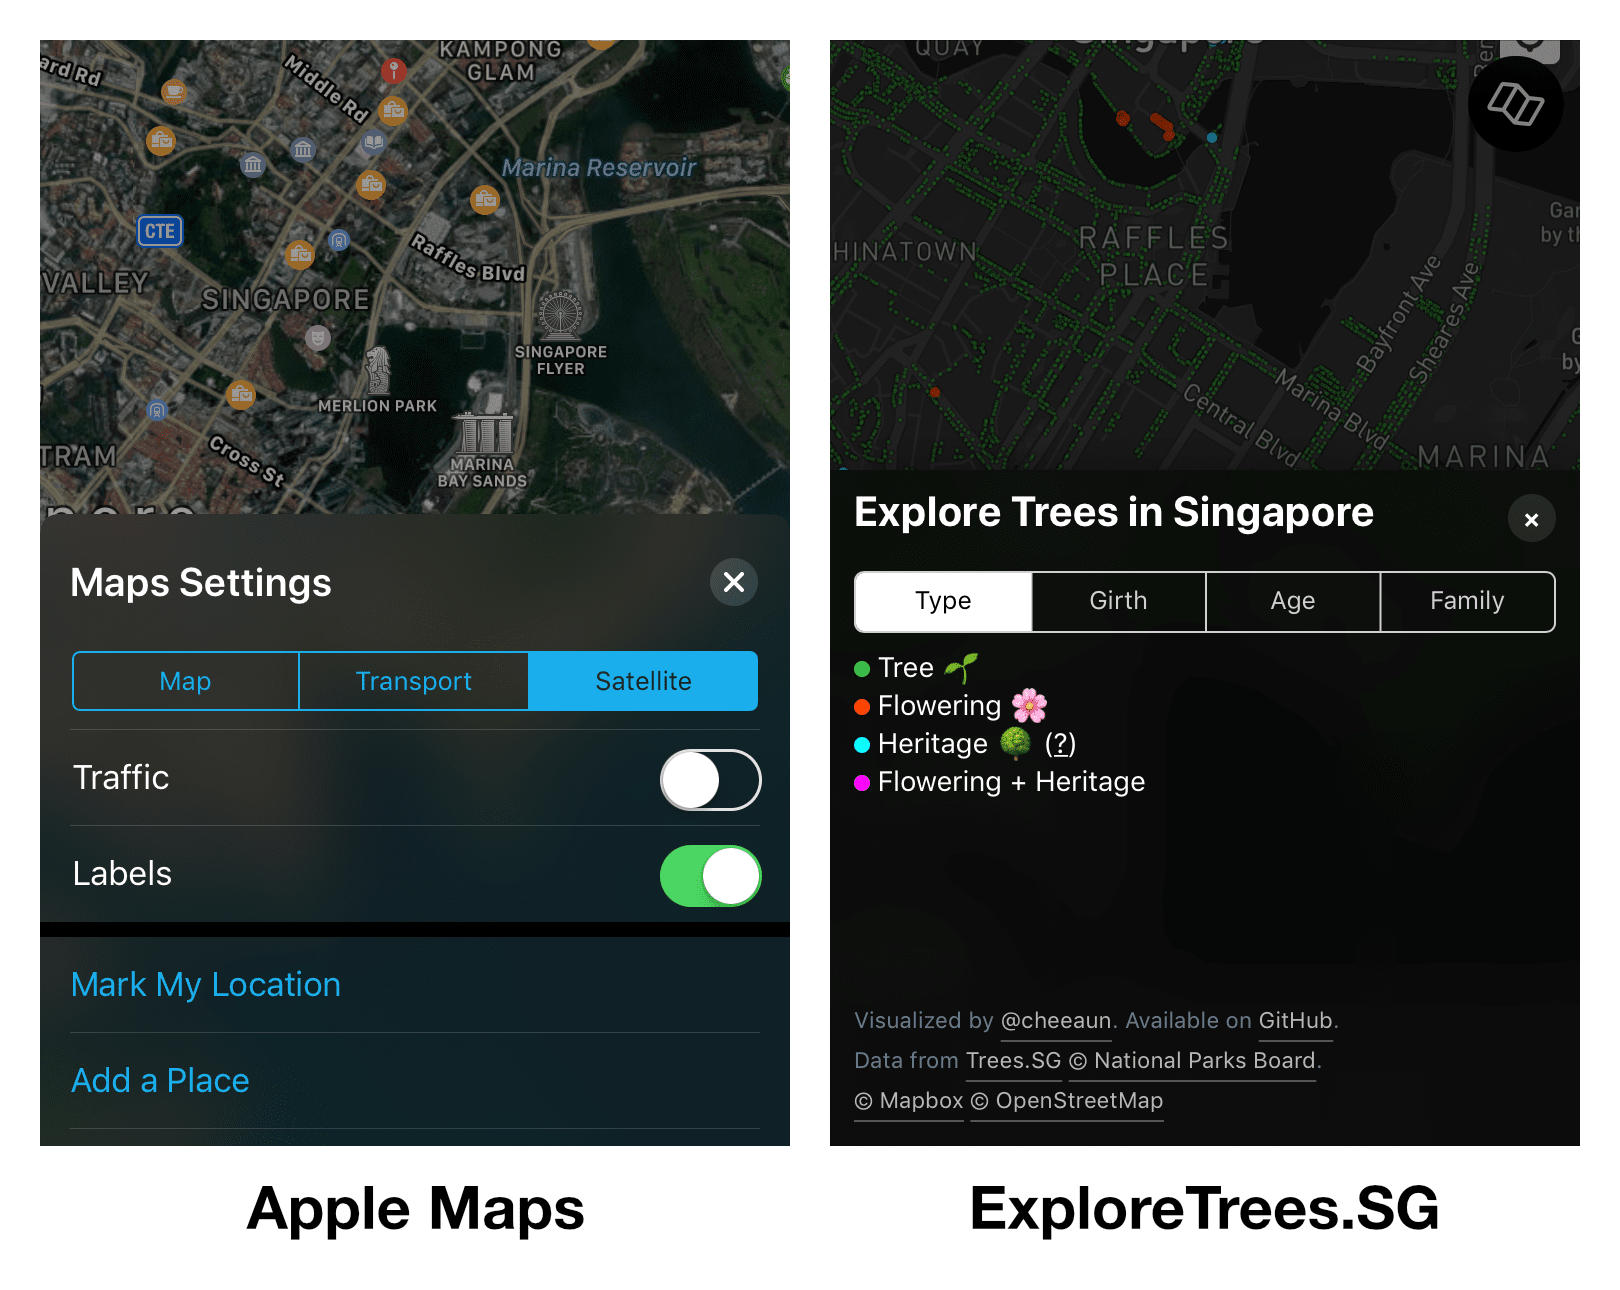 Apple Maps Settings compared to Layers panel in ExploreTrees.SG